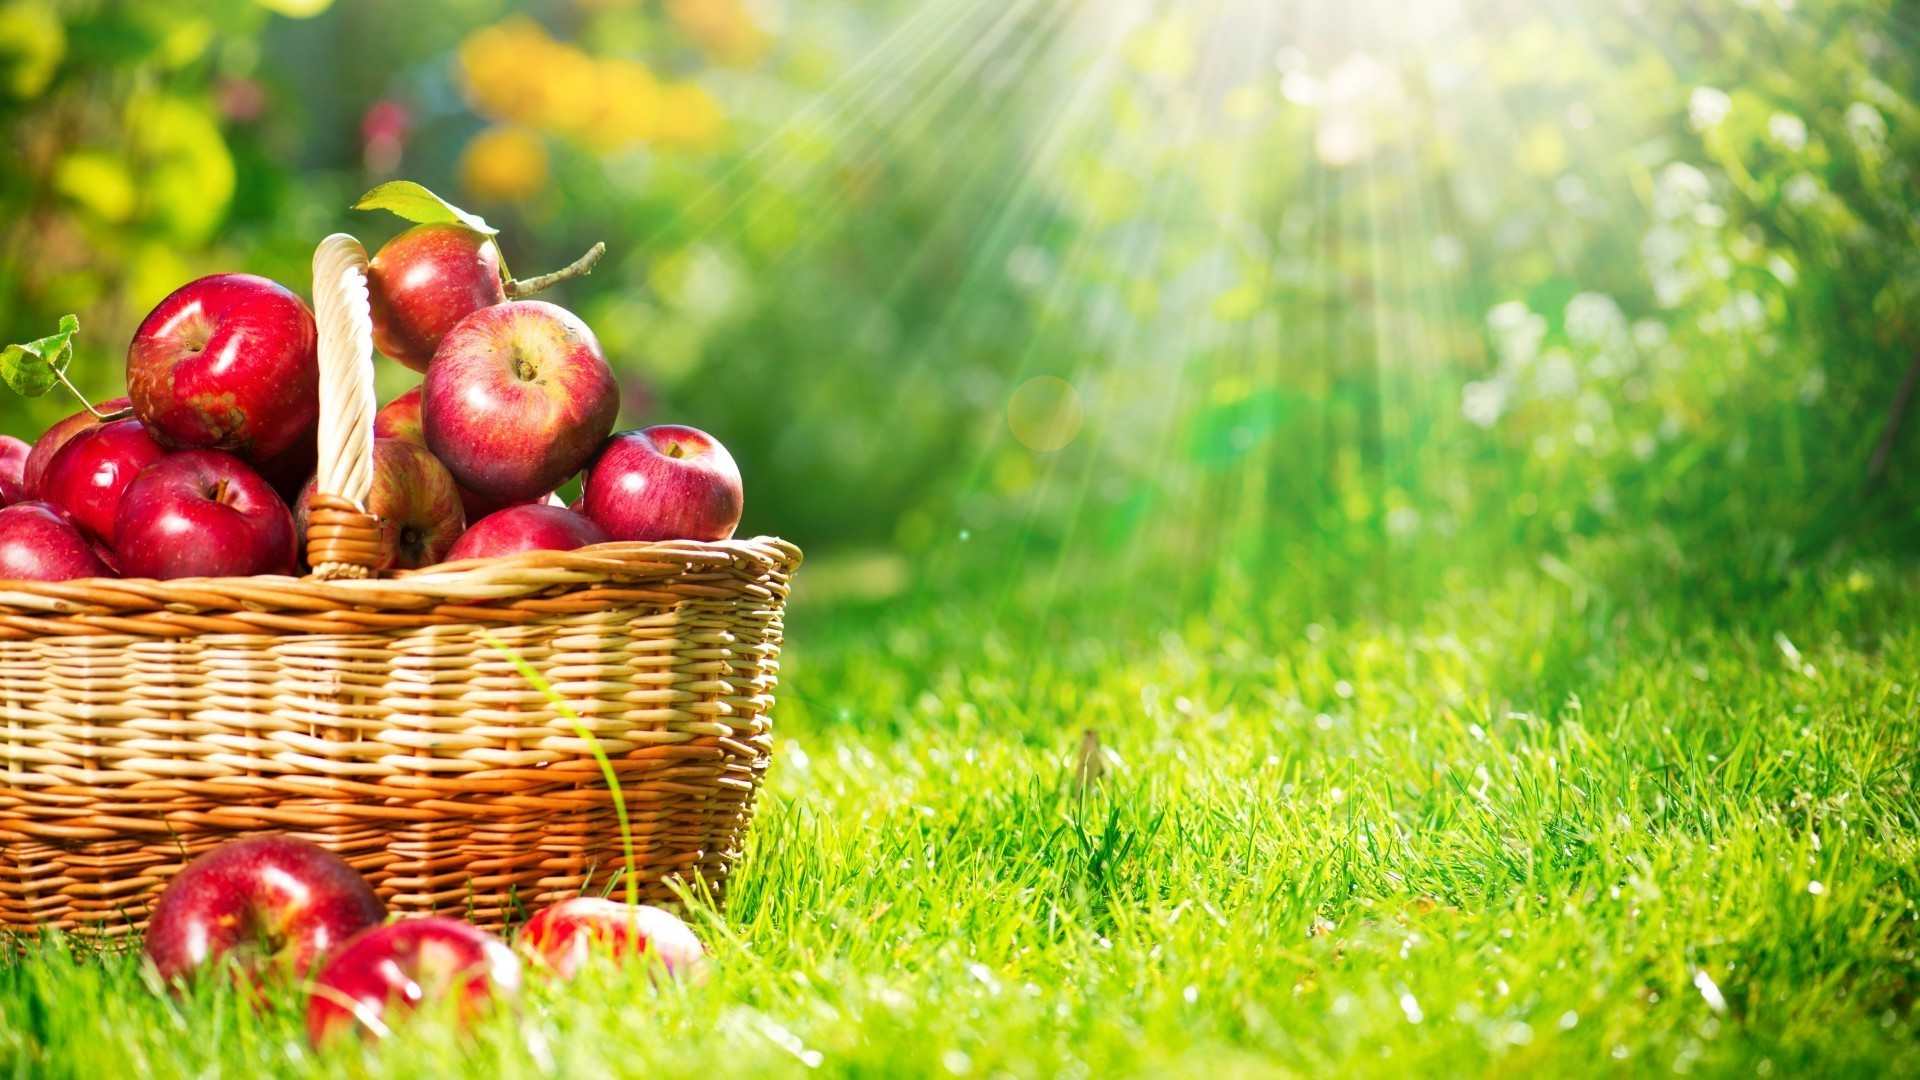 Basket with red apples in the sun on the grass